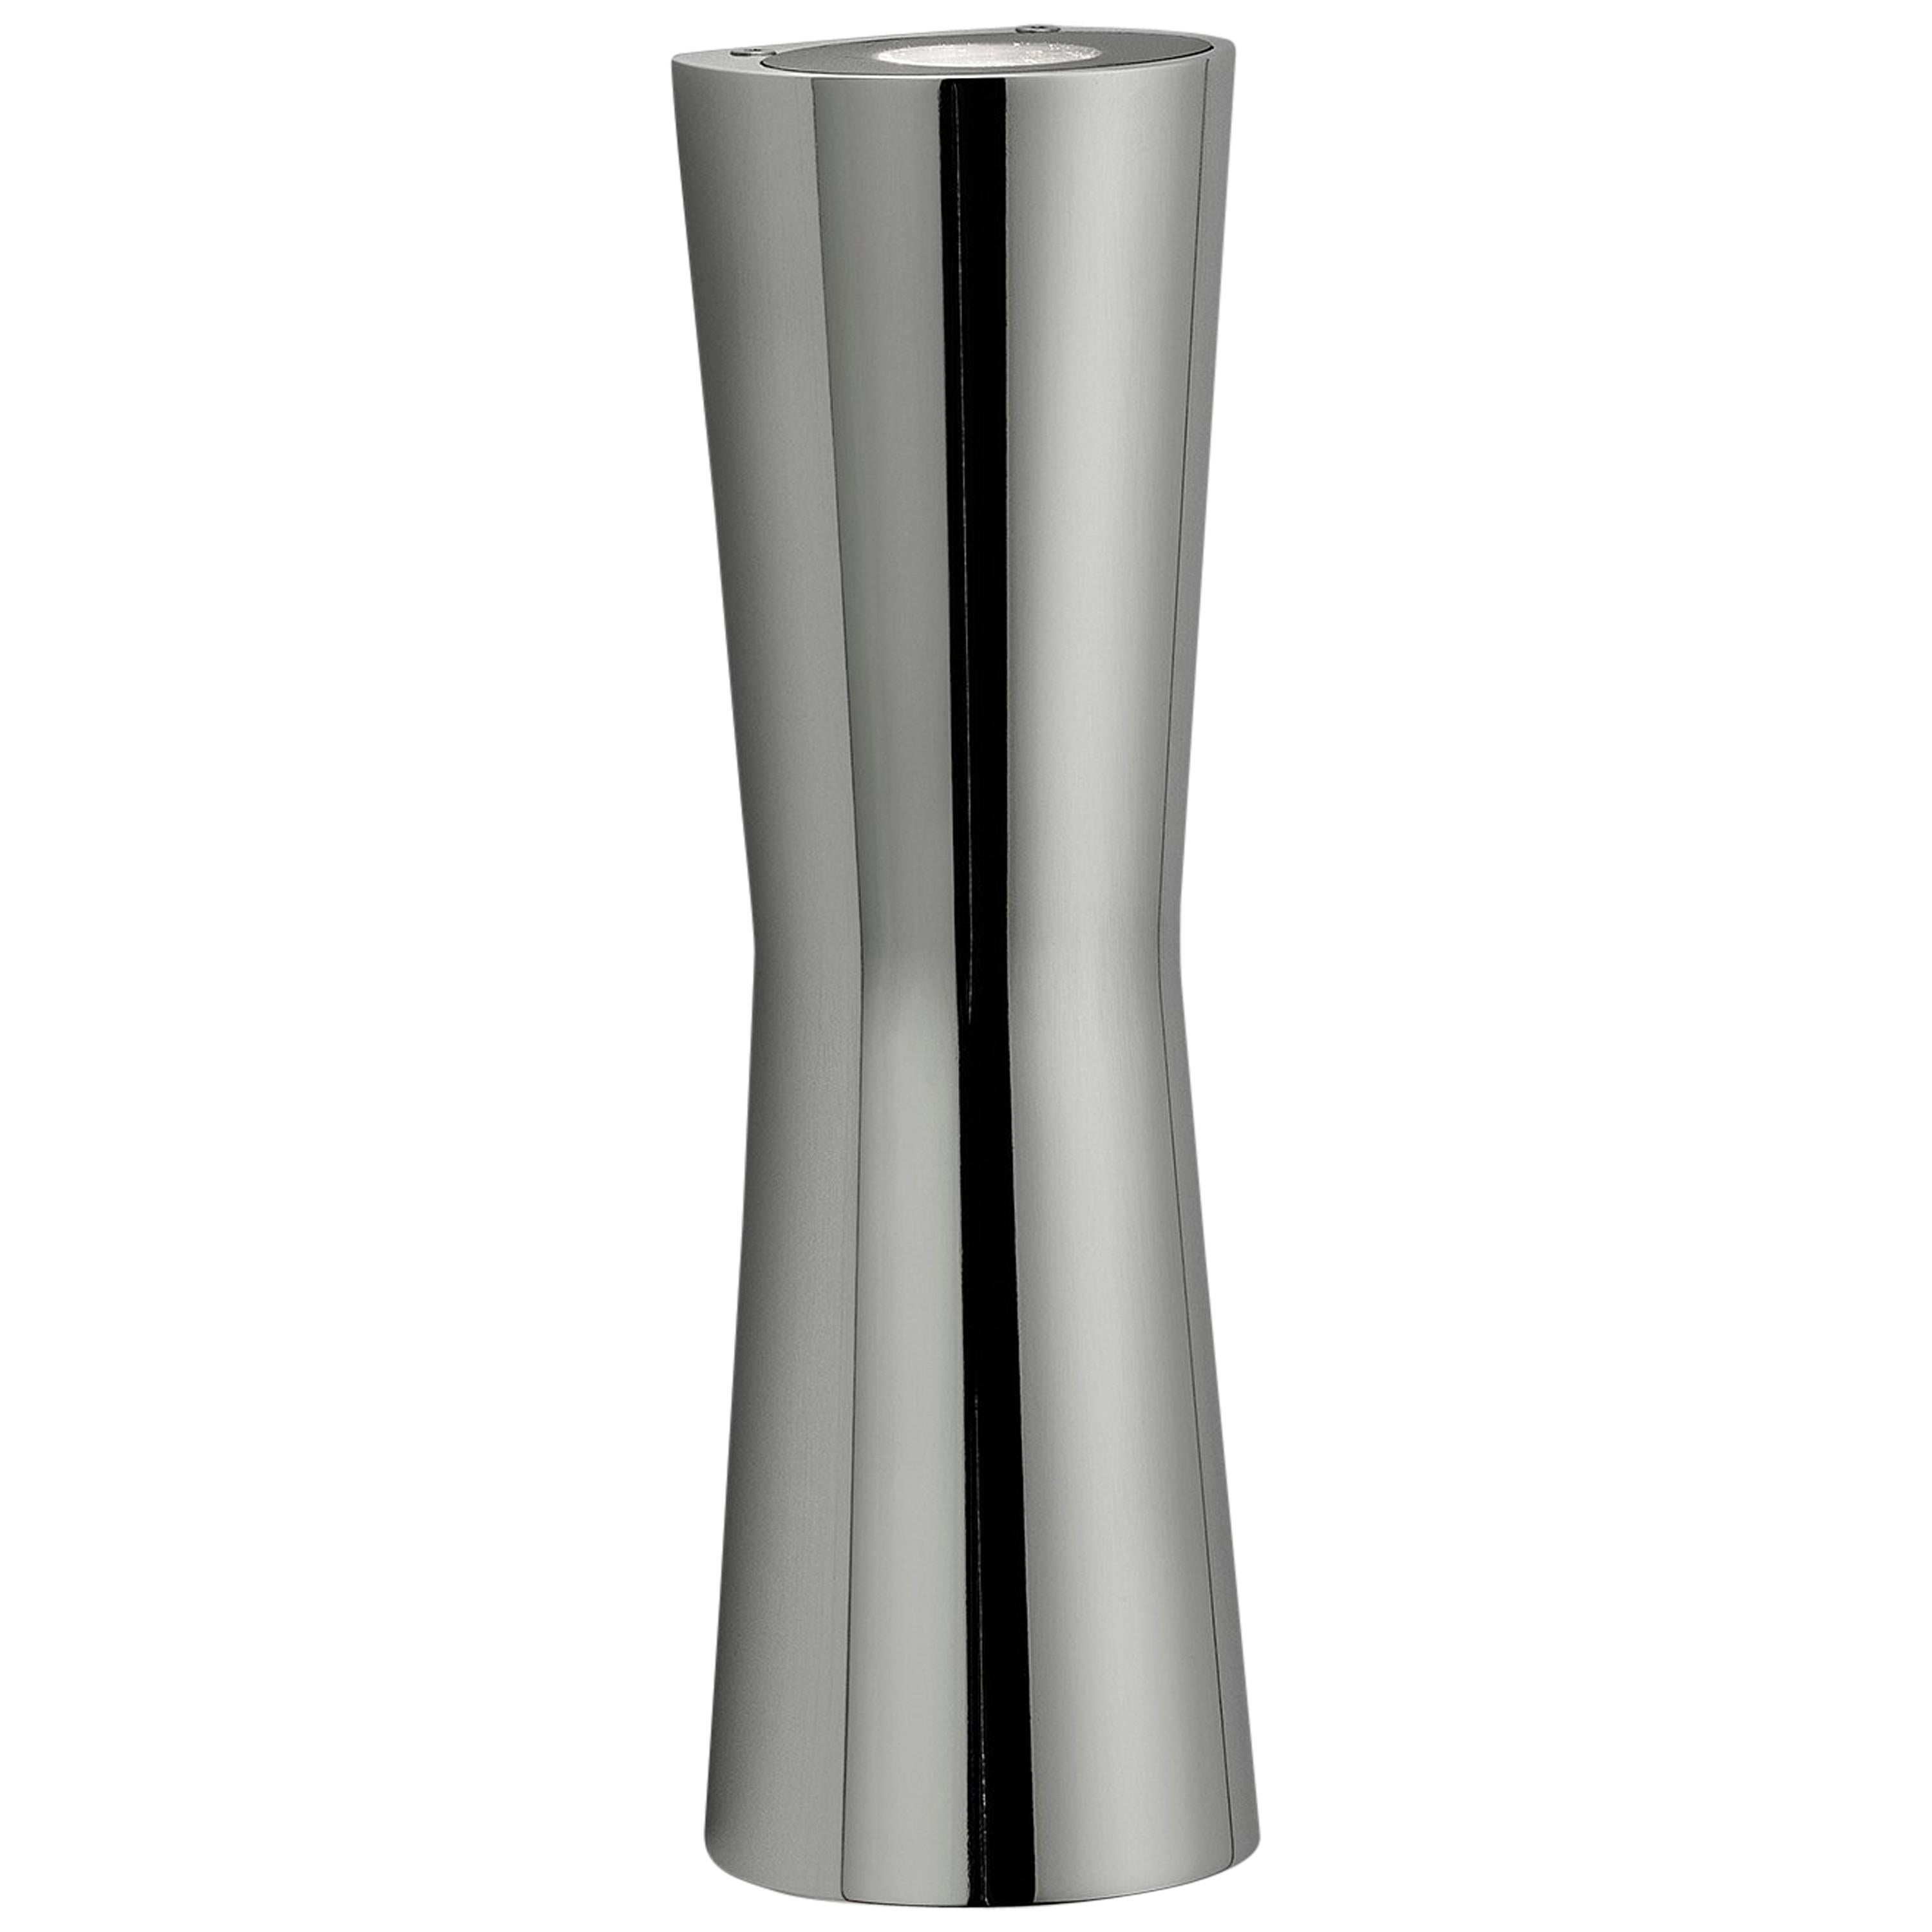 FLOS Clessidra 20° + 20° Indoor Wall Lamp in Chrome by Antonio Citterio